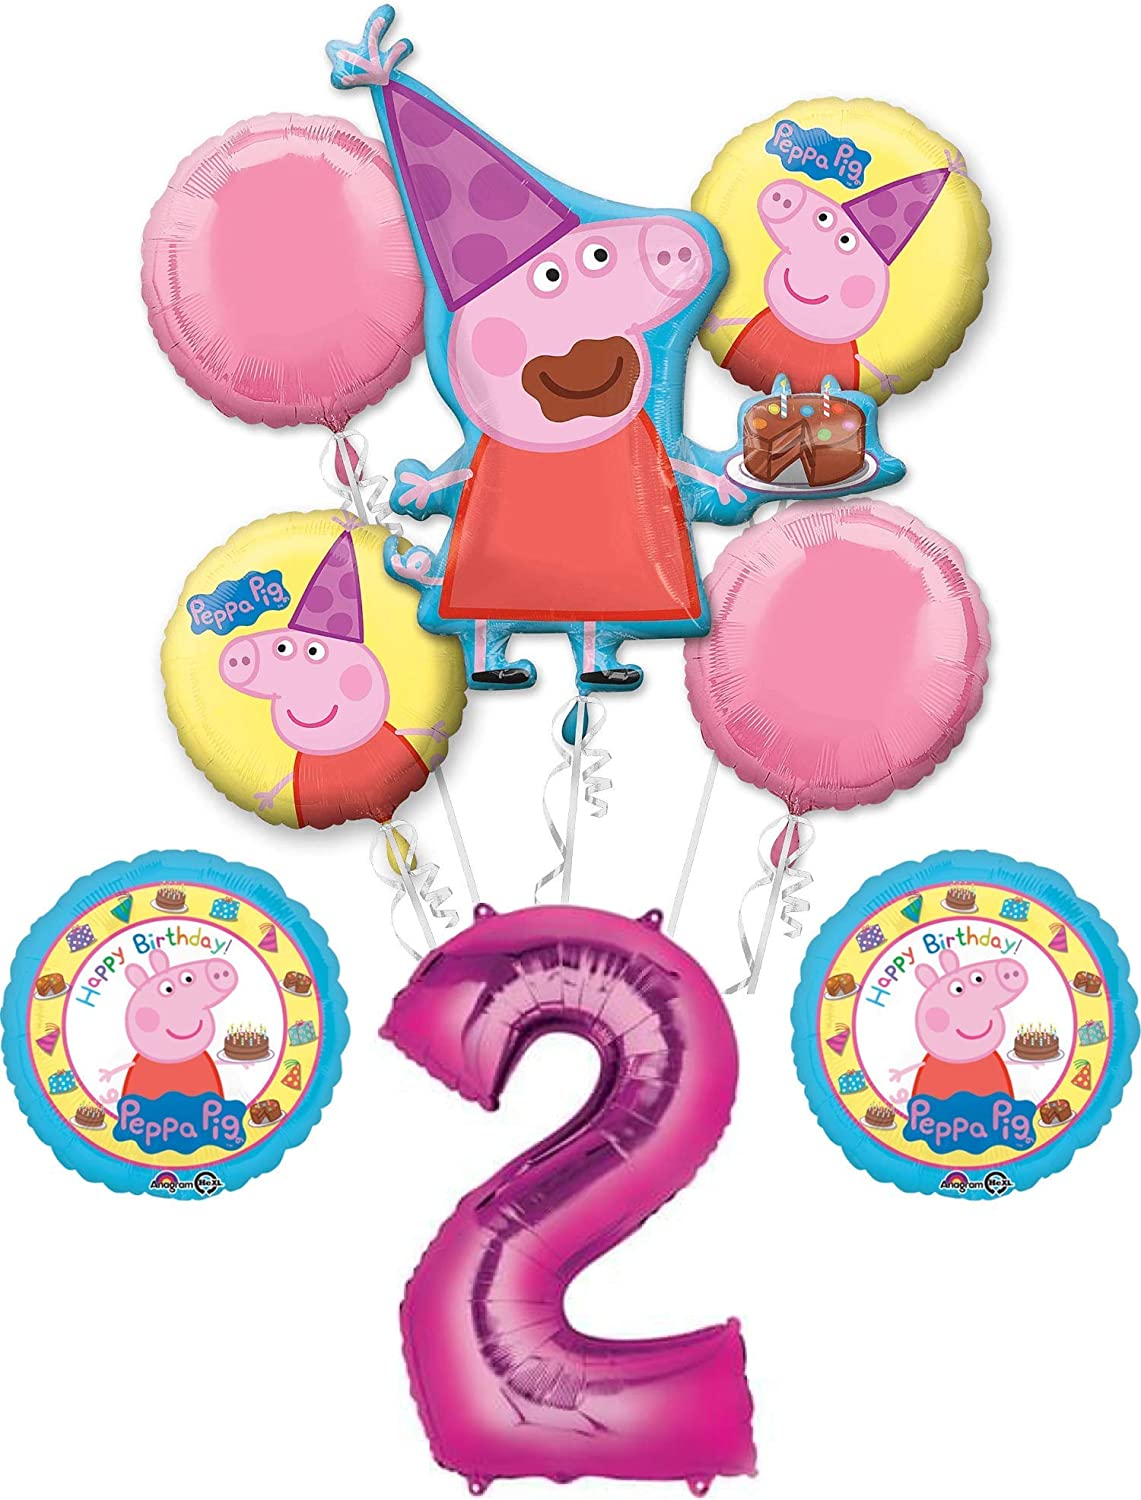 Peppa Pig 2nd Birthday Party Balloon Bouquet Bundle, for 2 Year Old, Includes 8 Balloons